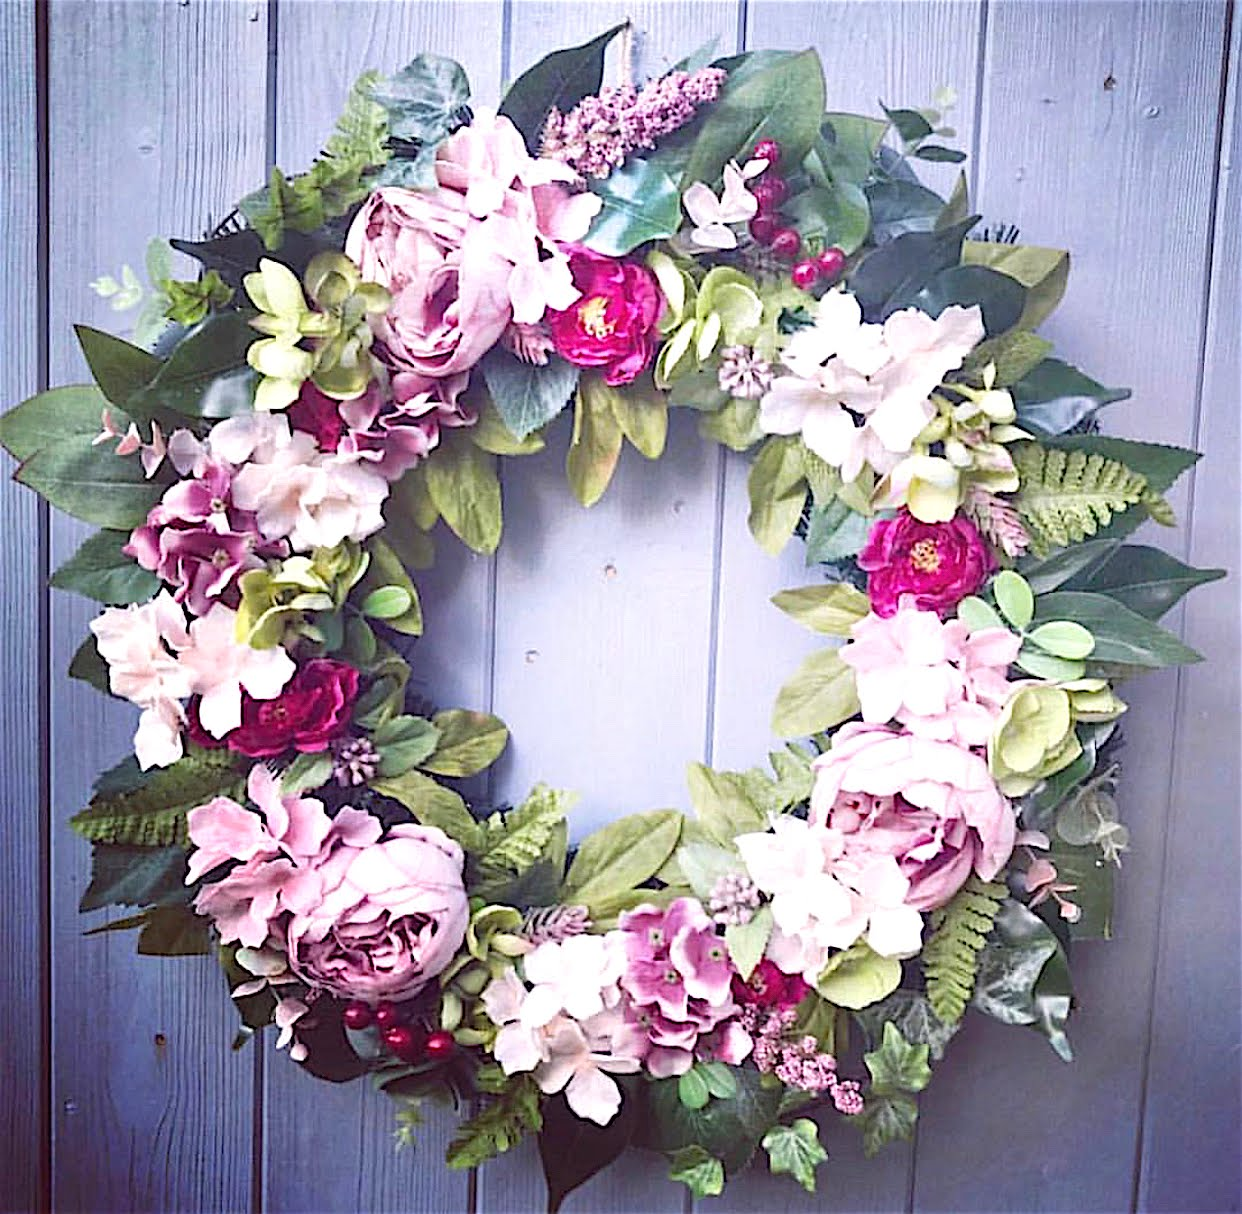 jasmine and lily floral wreaths